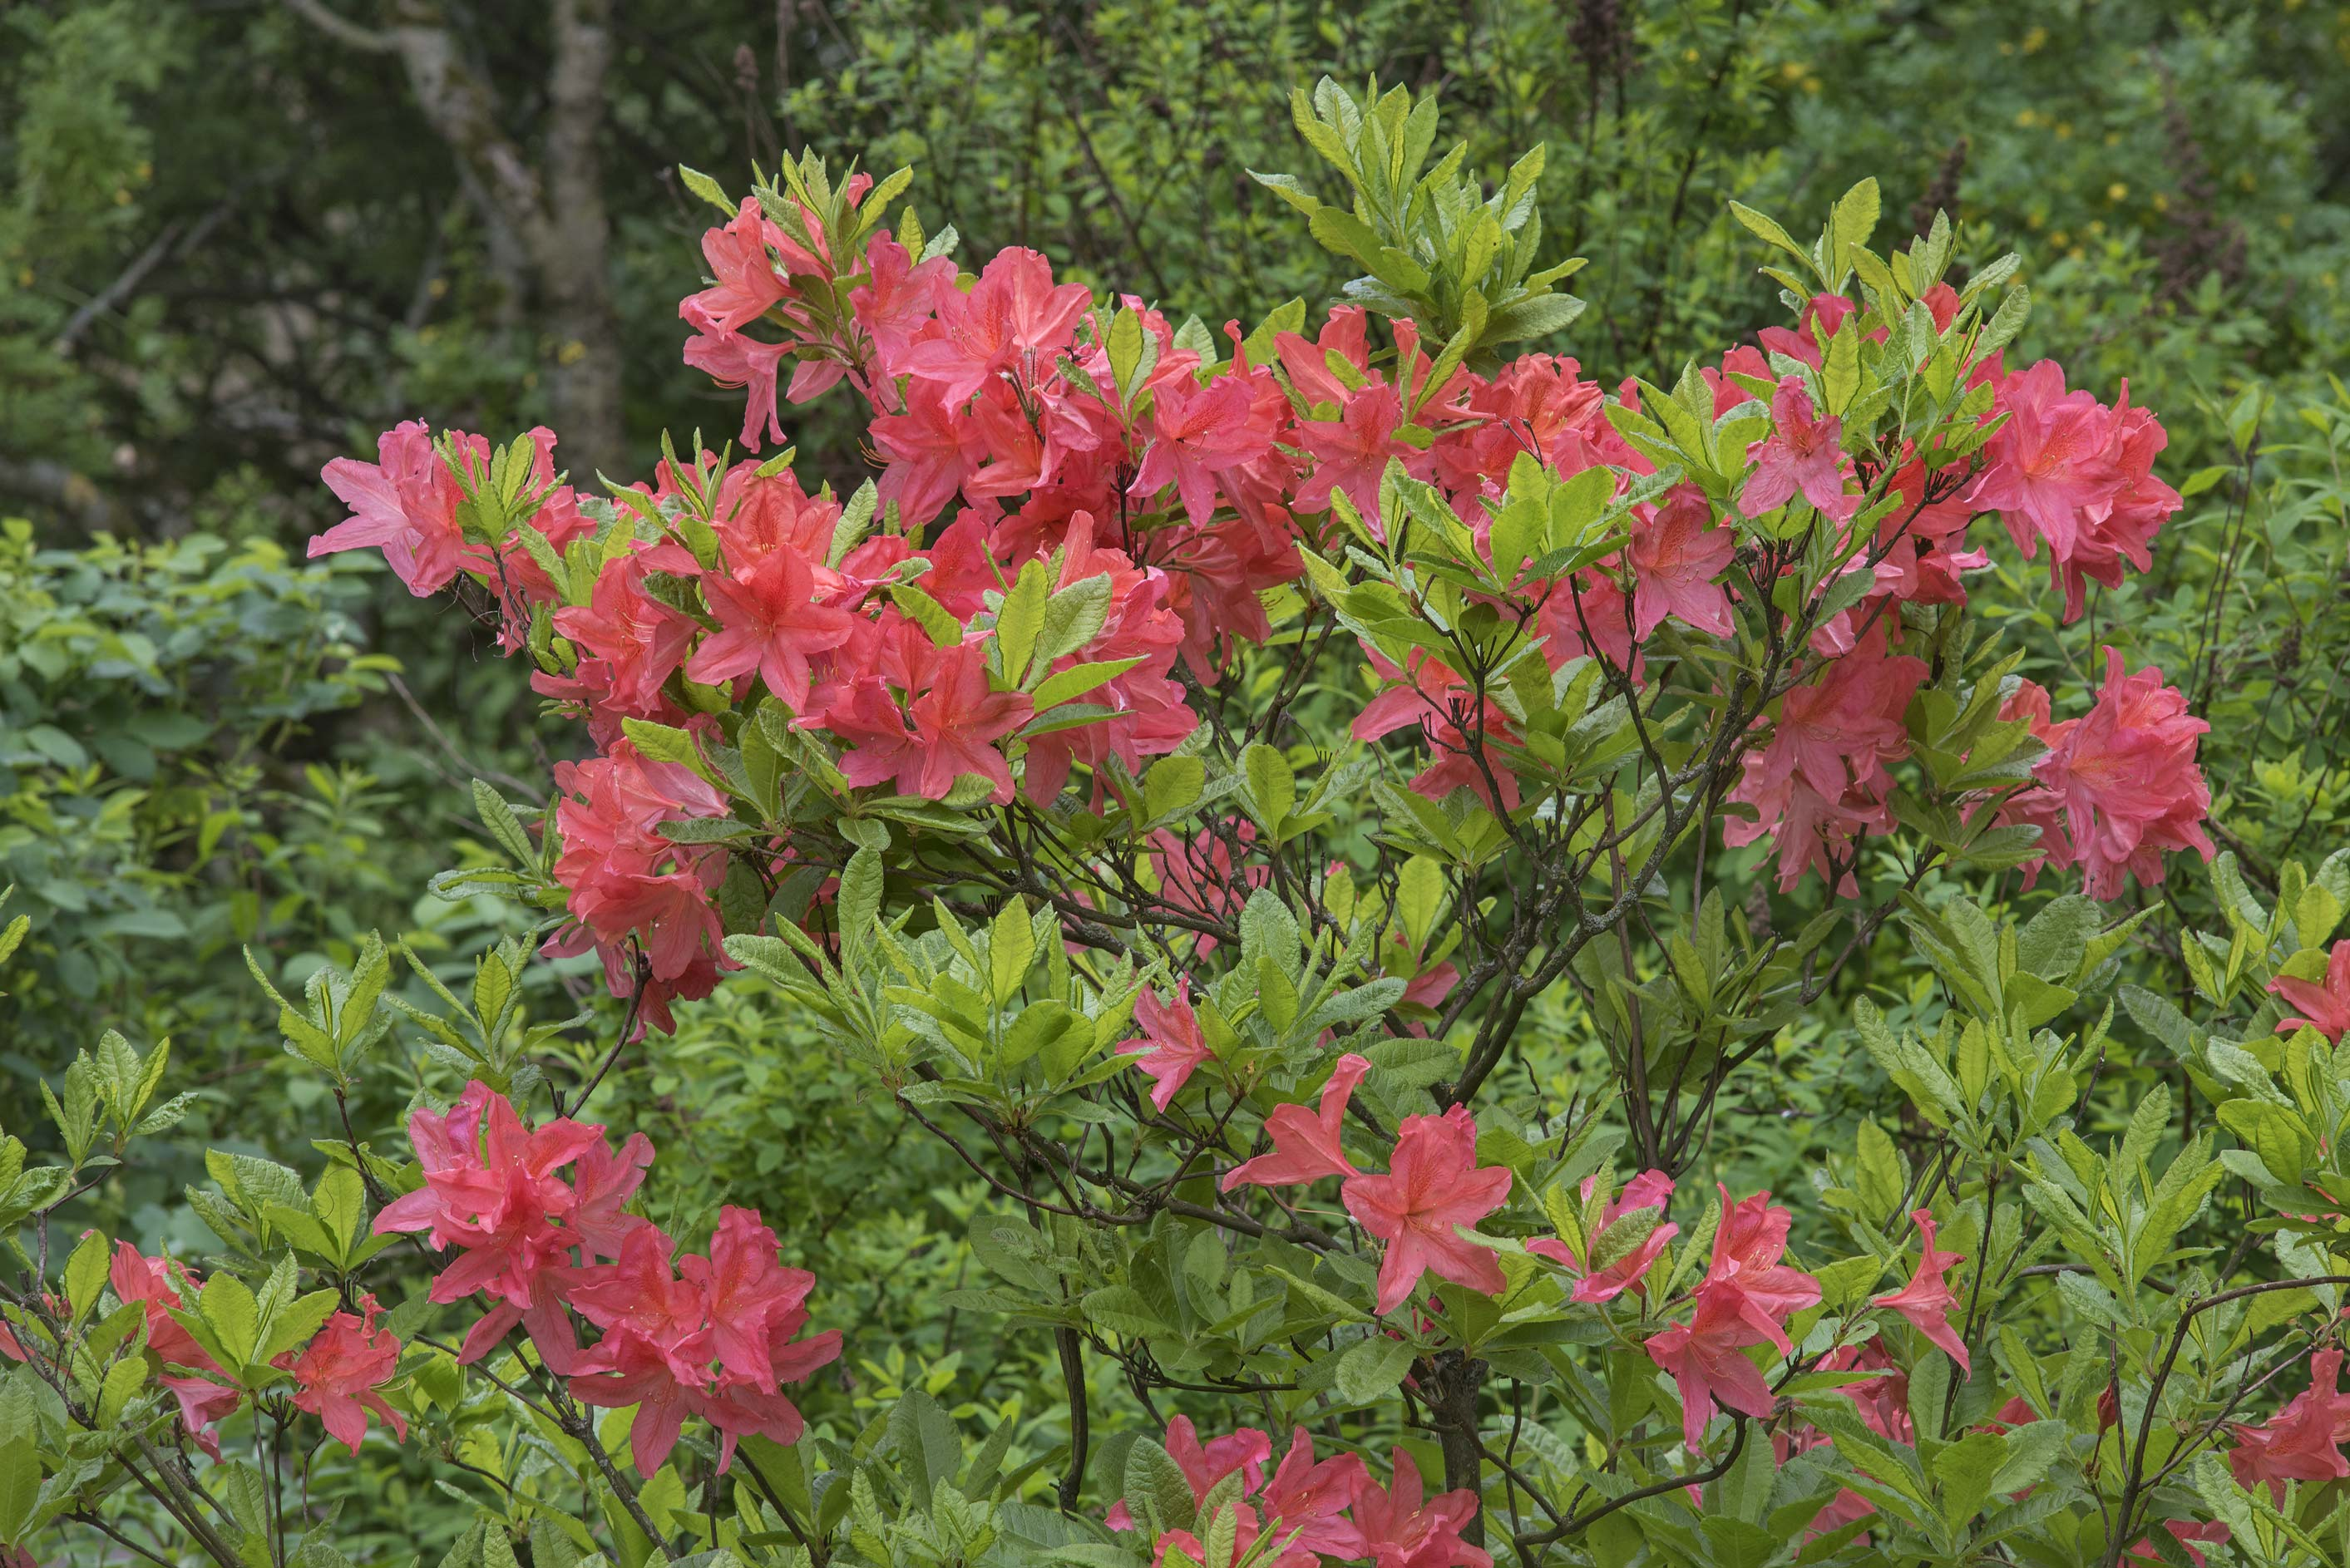 Red flowers of azalea (Rhododendron smirnovii) in...Institute. St.Petersburg, Russia